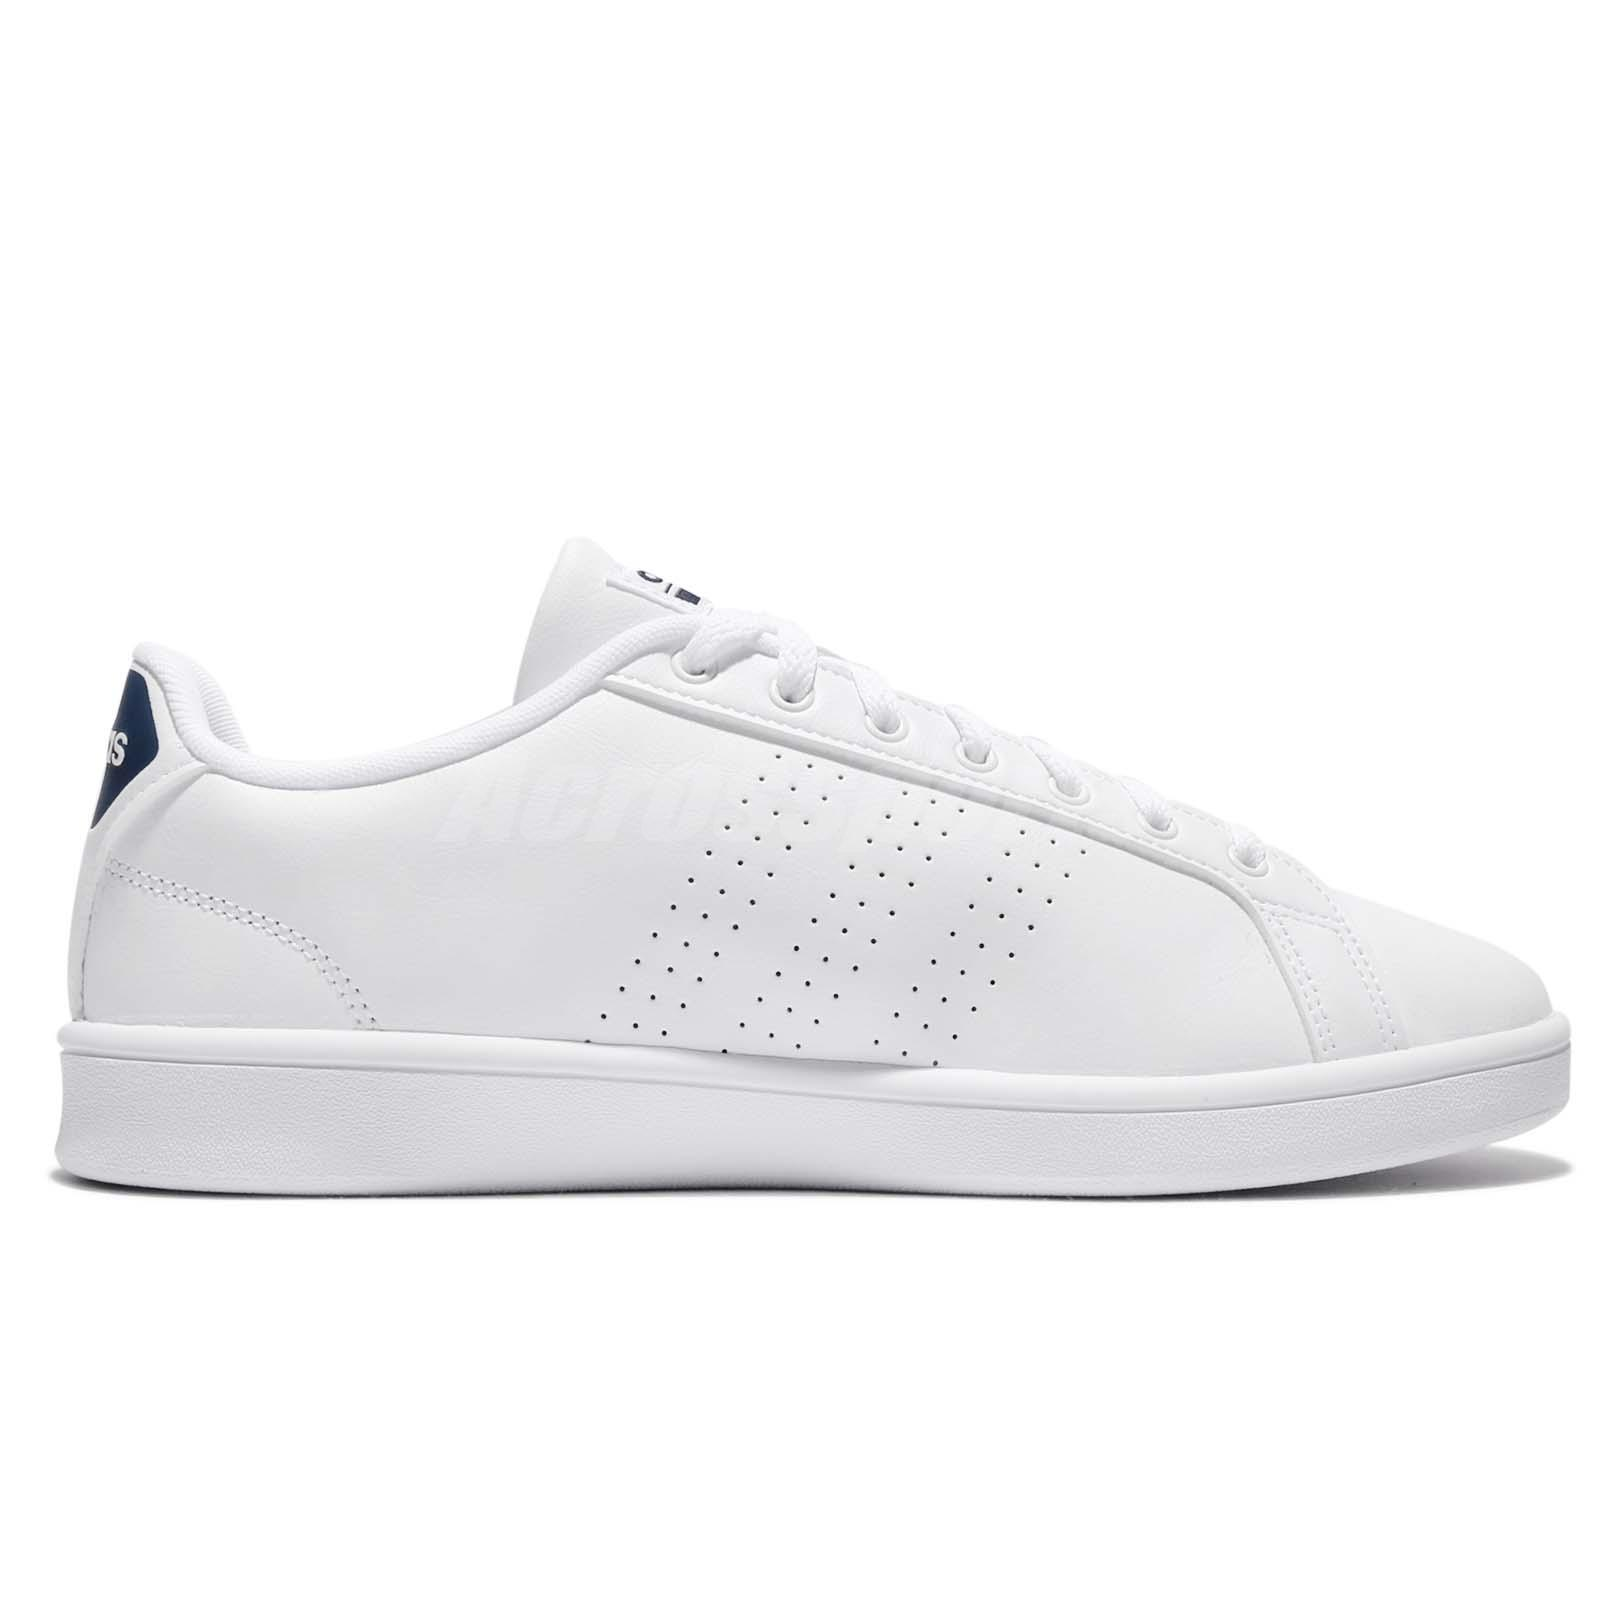 adidas cloudfoam advantage mens navy